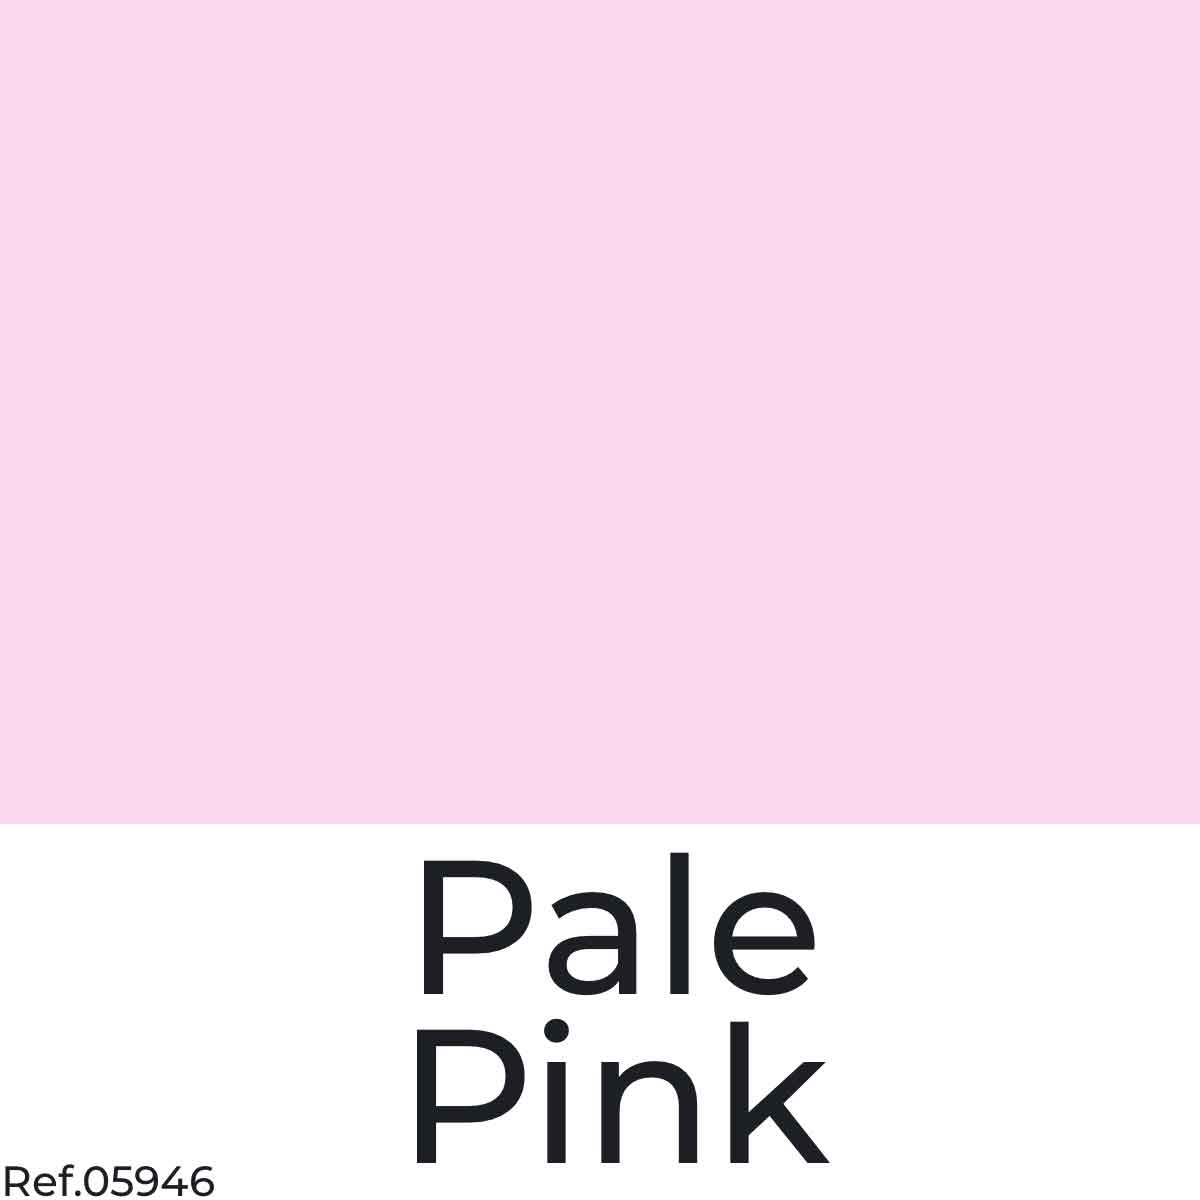 Pale Pink Color Poster Paper from najamonline.com Abu Dhabi - UAE